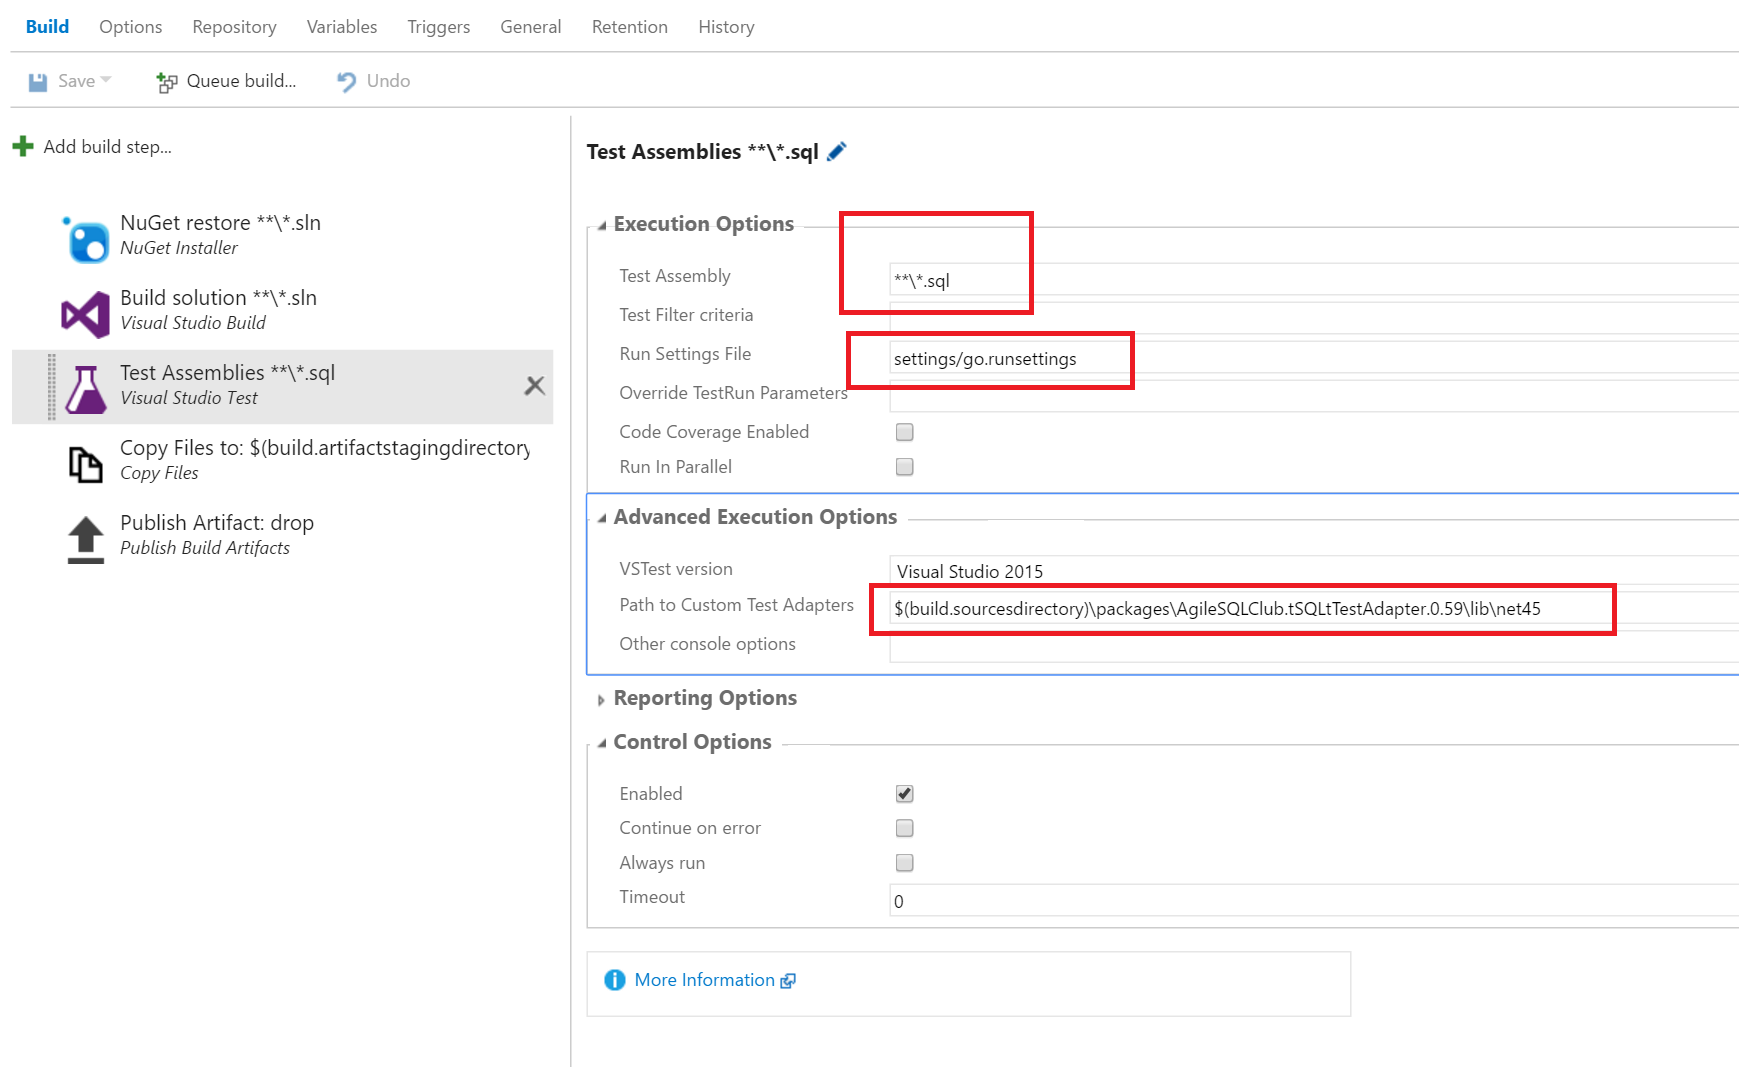 Configuring the test task on vsts